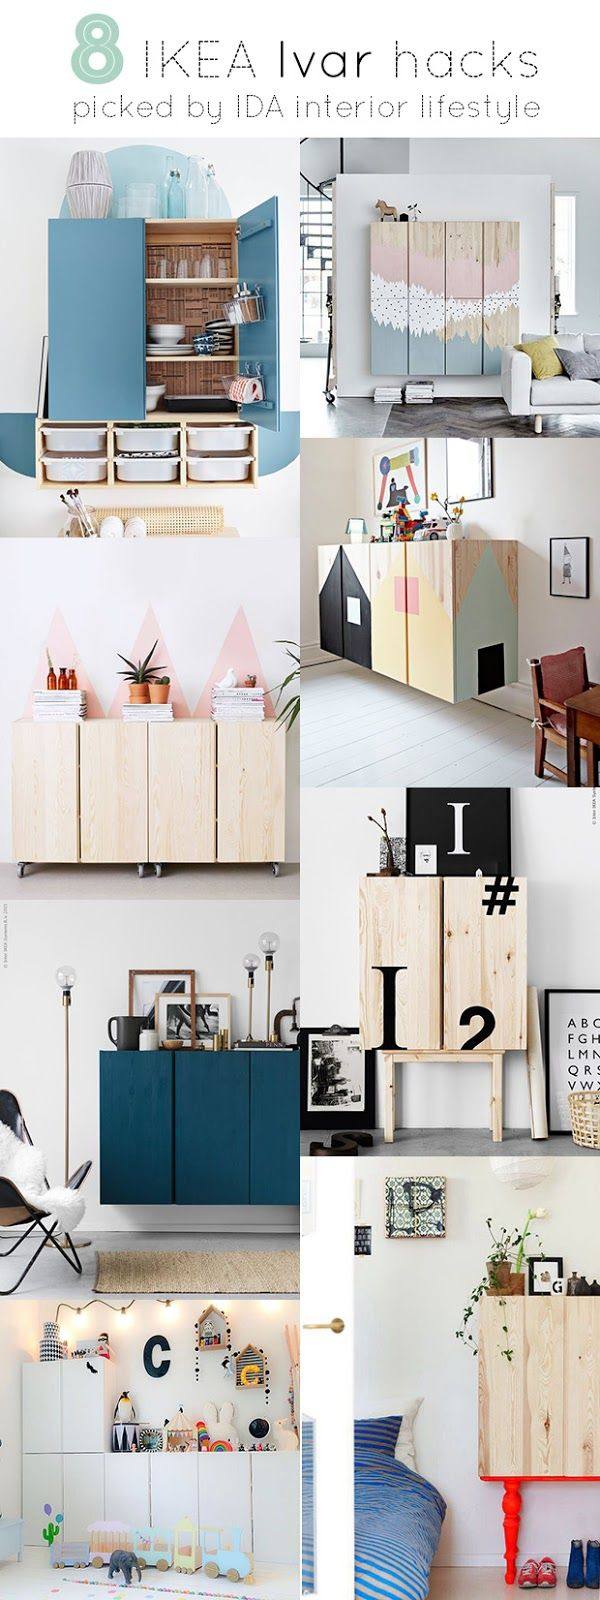 The IVAR cabinet from Ikea {the same one I bought for my TV}, seems to be one of the latest pieces launched by the swedish company, that best lends itself to being hacked. The simple shape and…